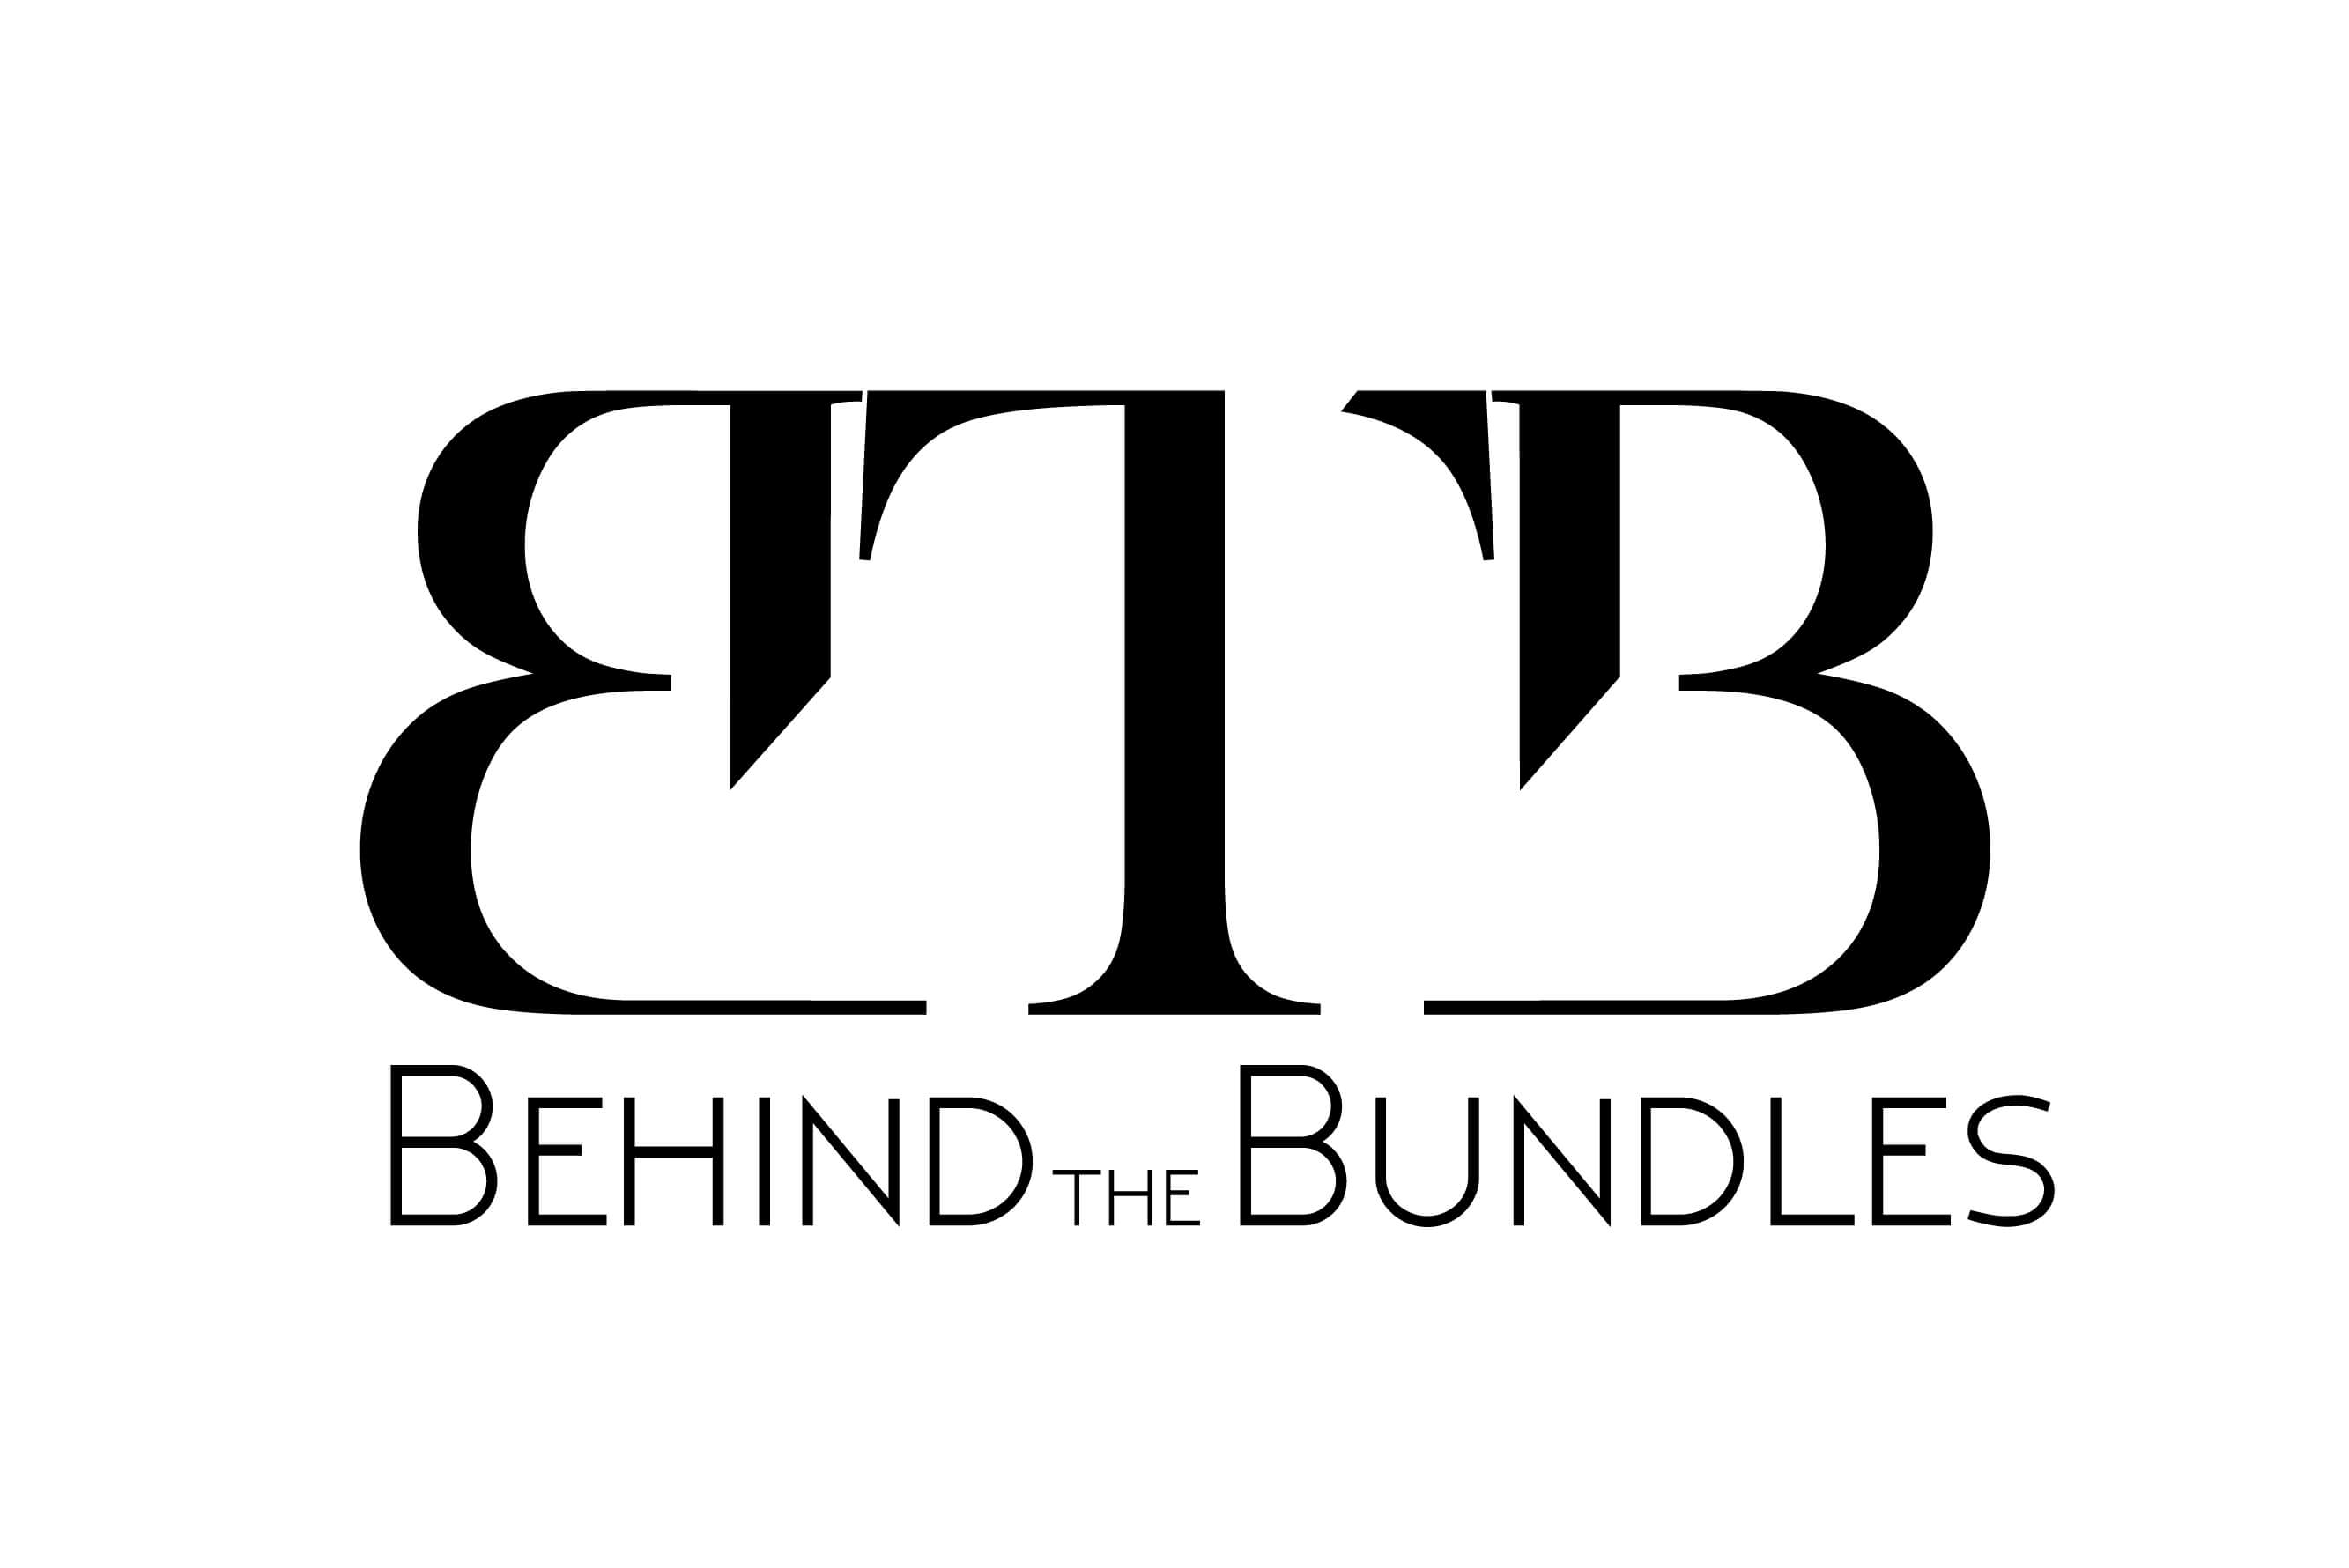 Behind The Bundles